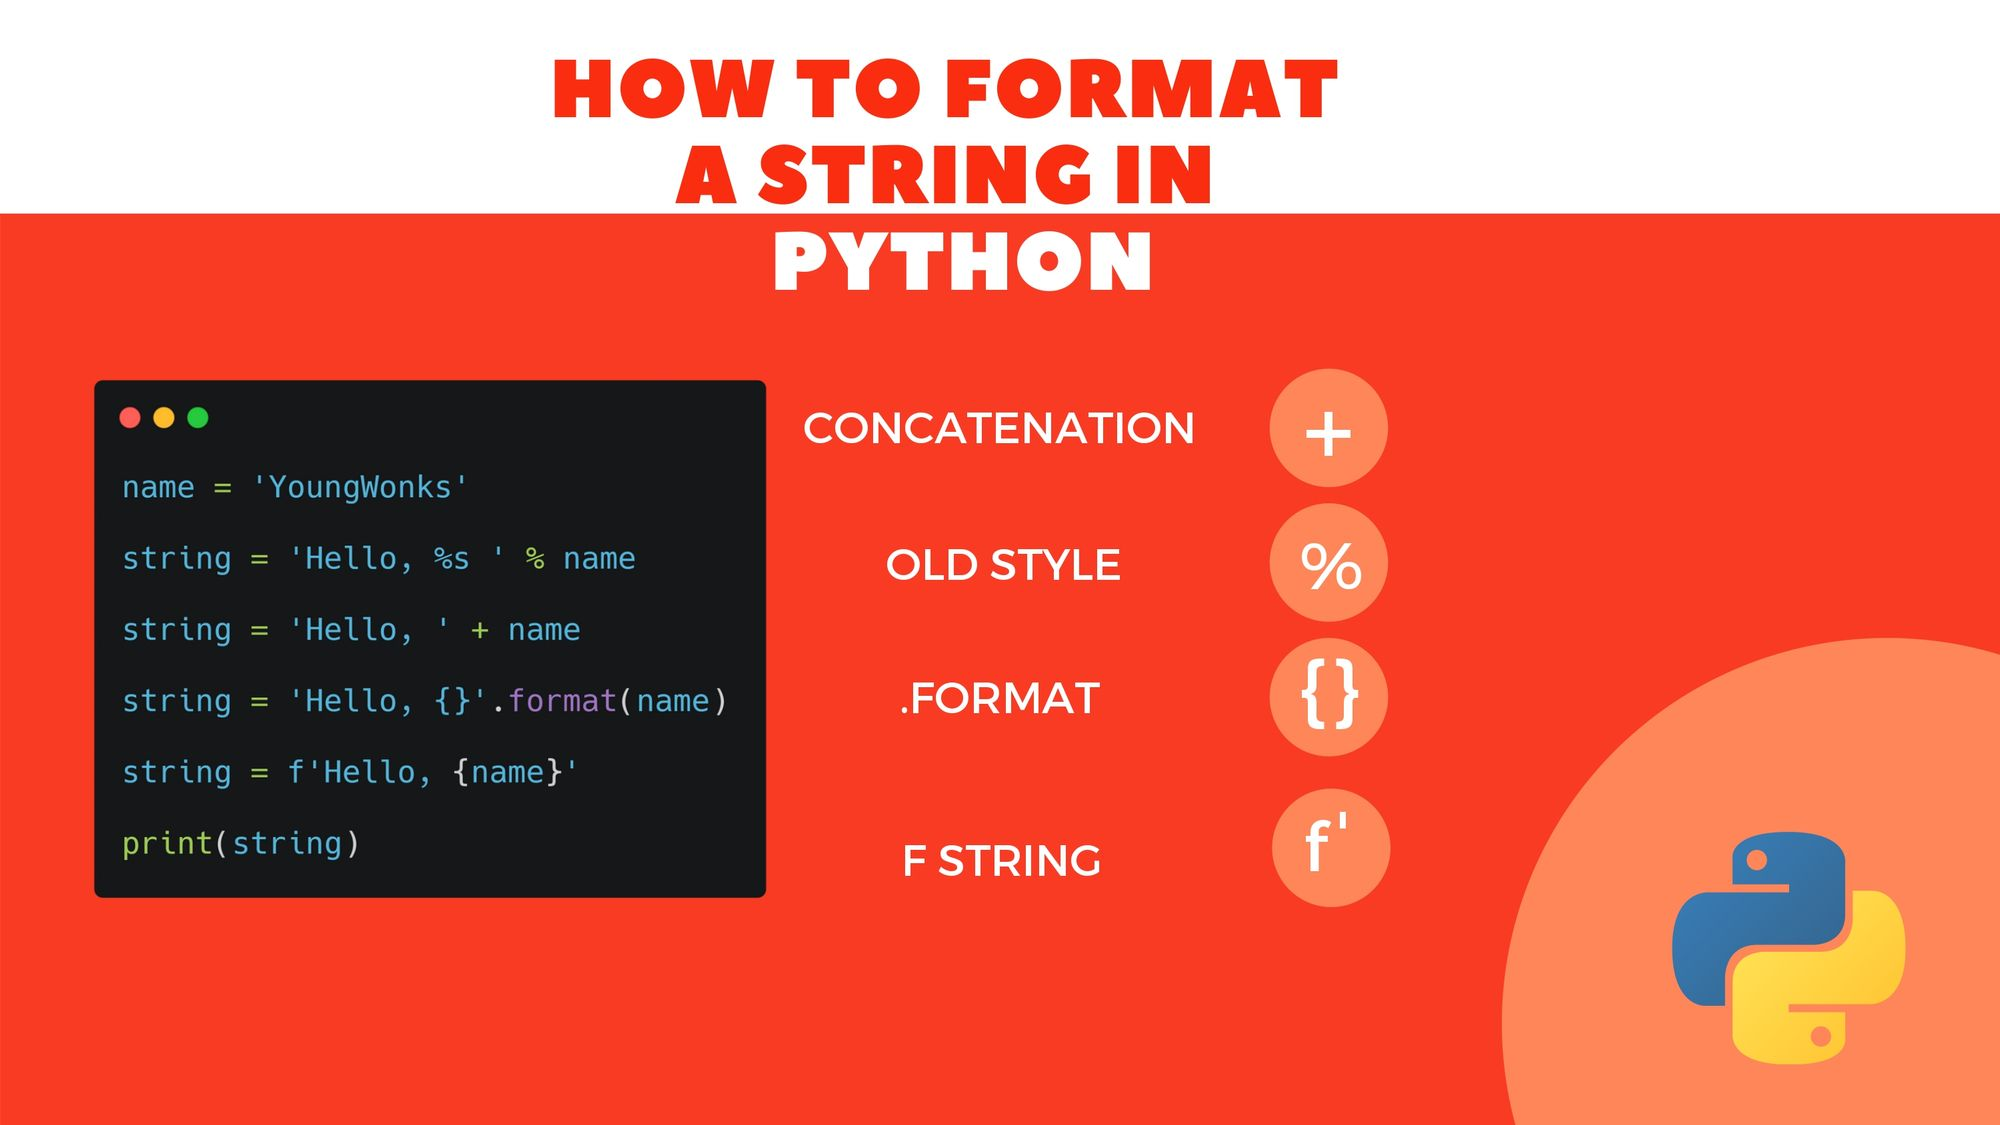 How to Format a String in Python